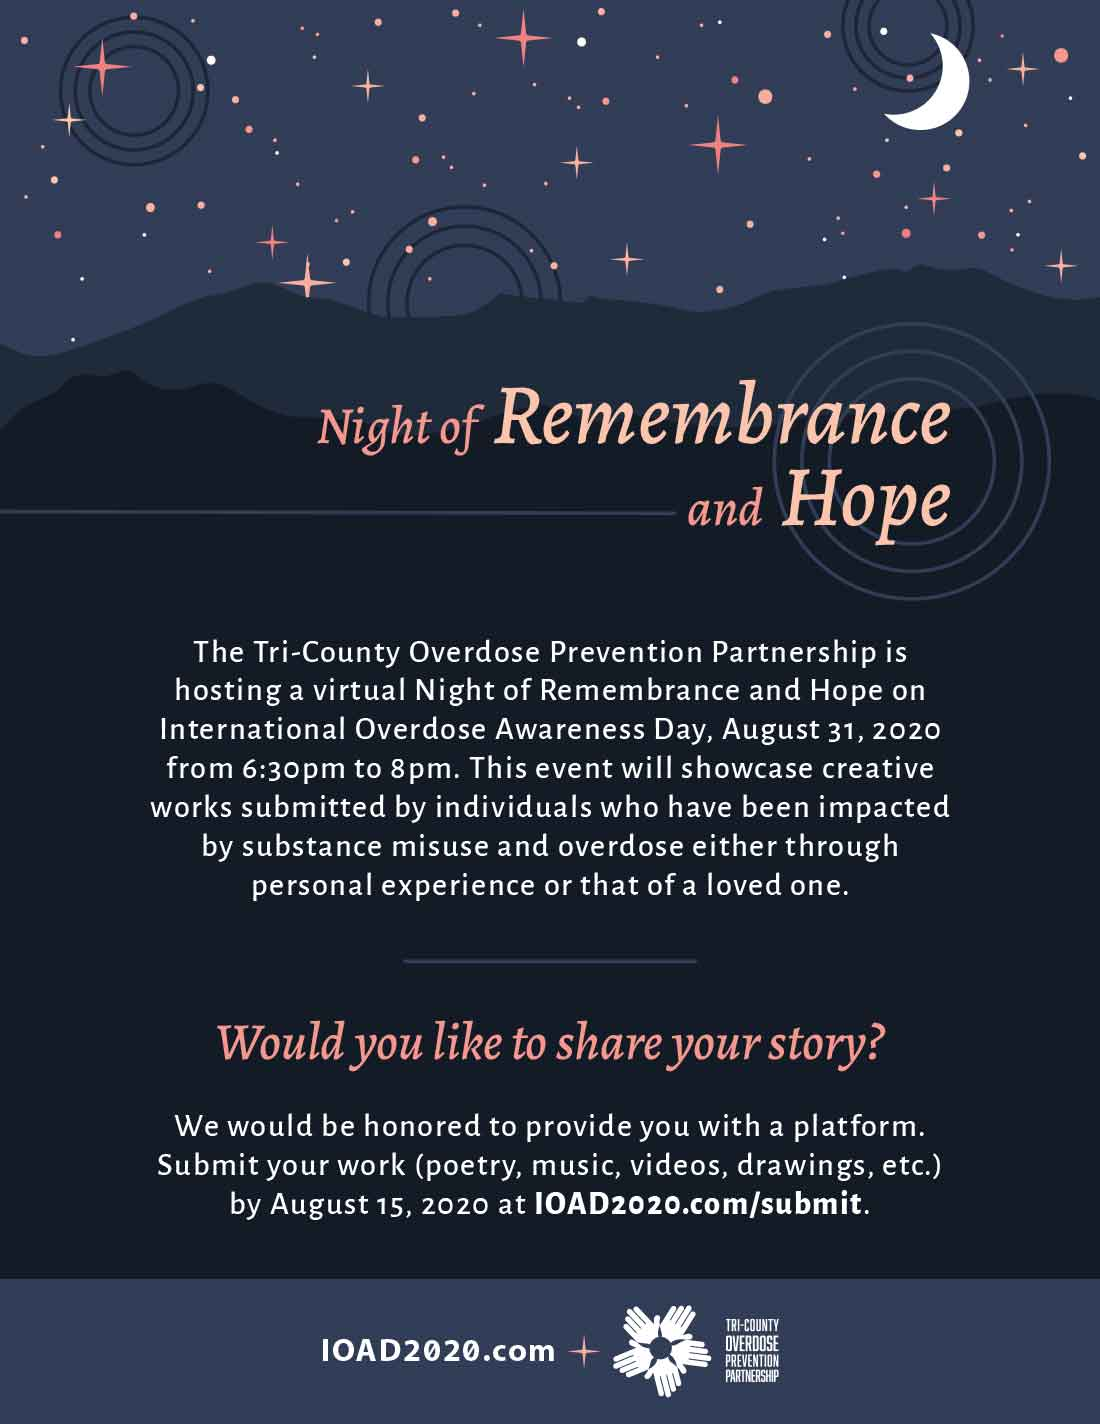 Night-of-Remembrance-and-Hope_Share-Your-Story